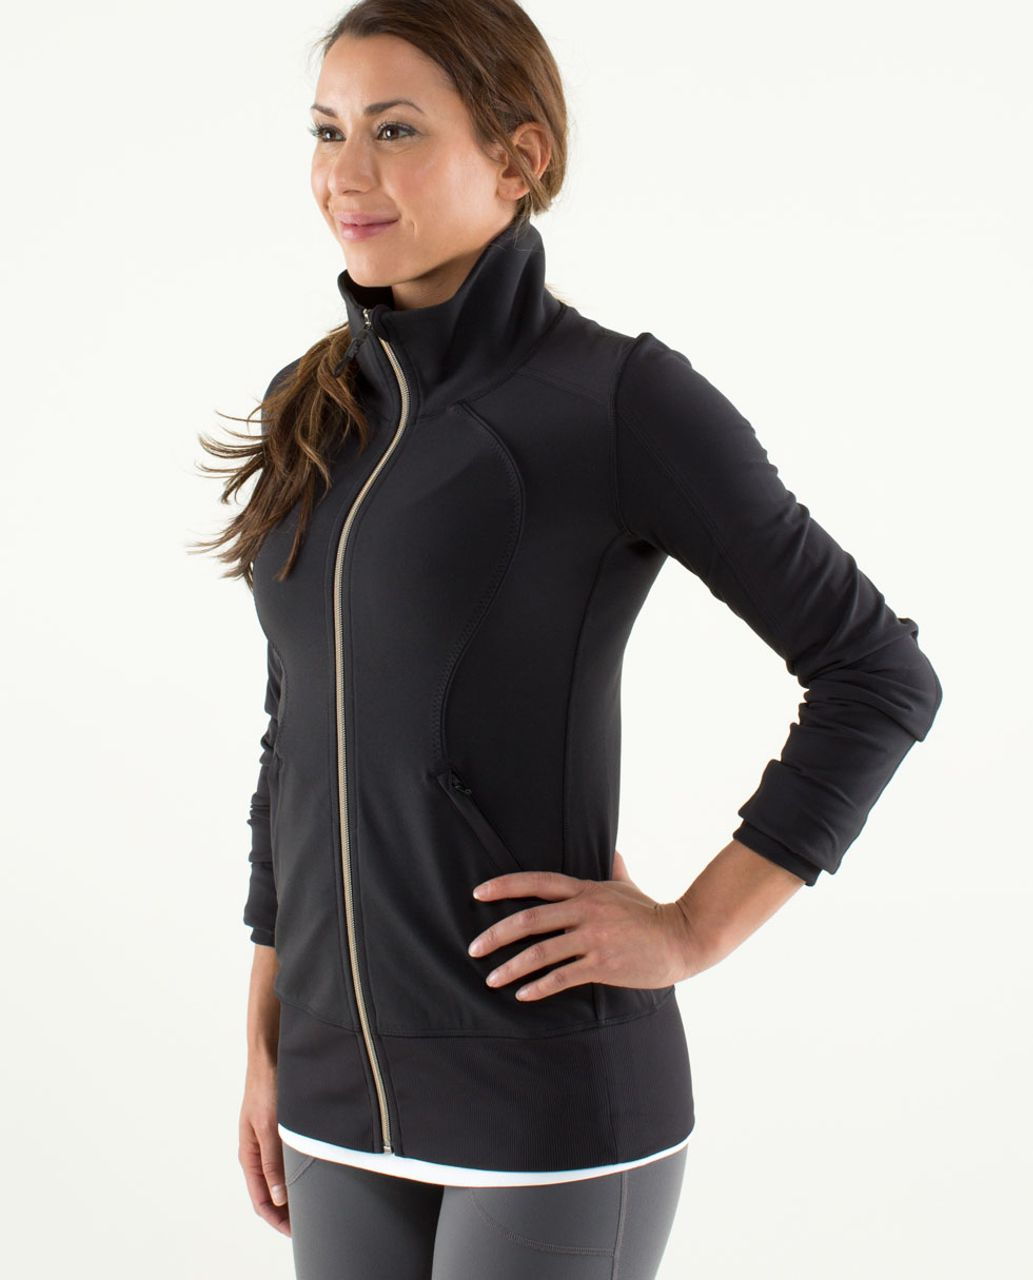 Lululemon Contempo Jacket - Black